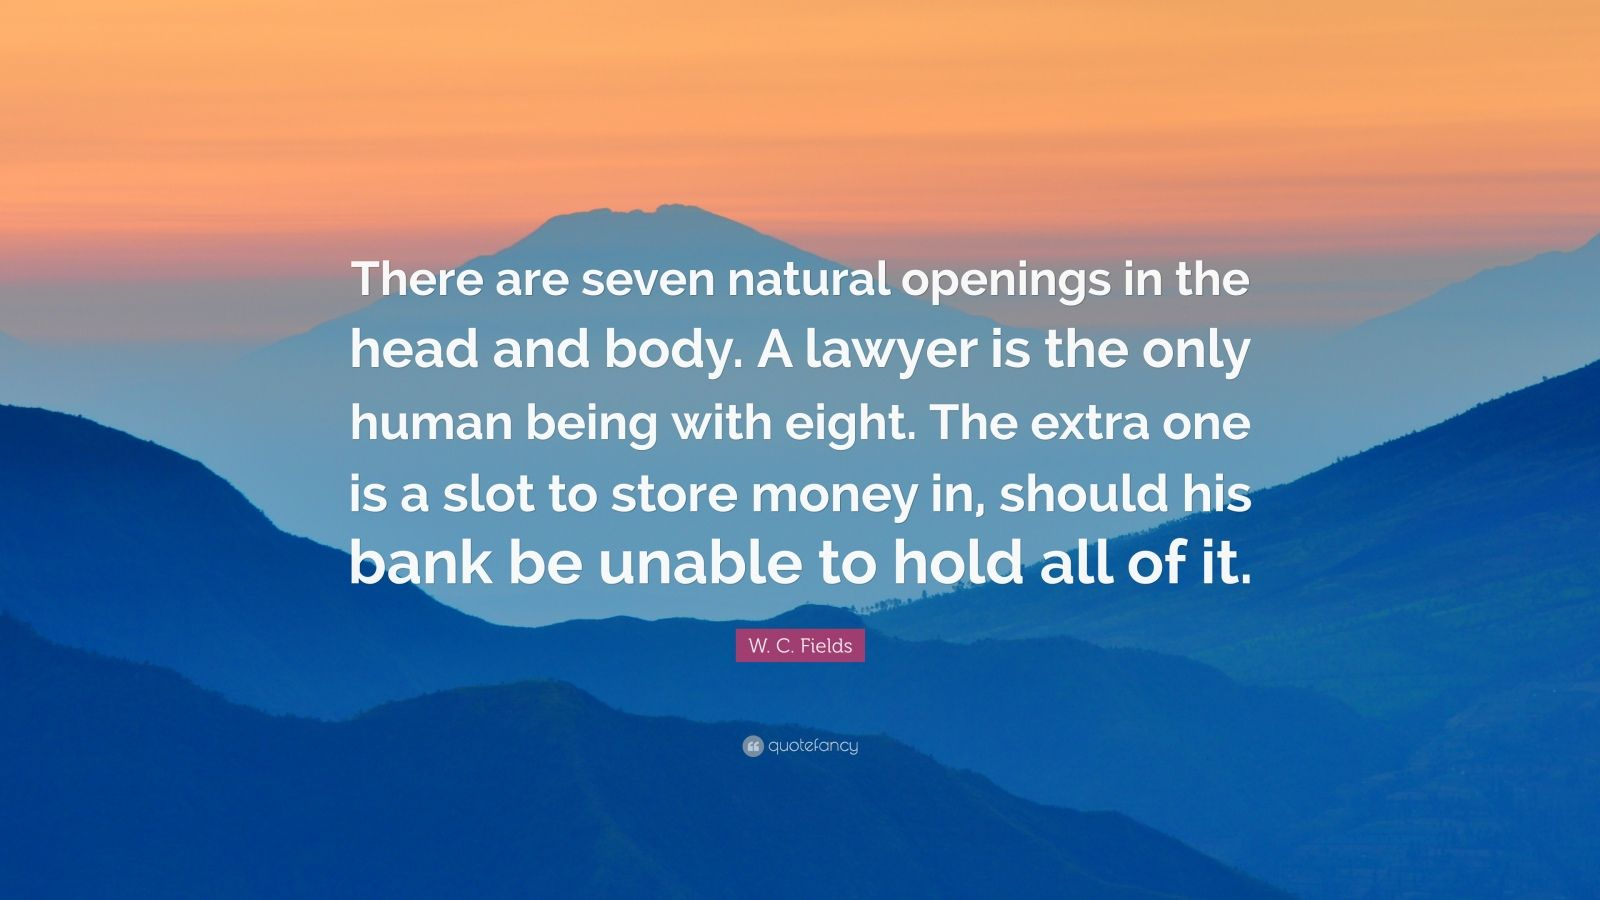 """W. C. Fields Quote: """"There are seven natural openings in the head and body. A lawyer is the only human being with eight. The extra one is a slot to store money in, should his bank be unable to hold all of it."""""""